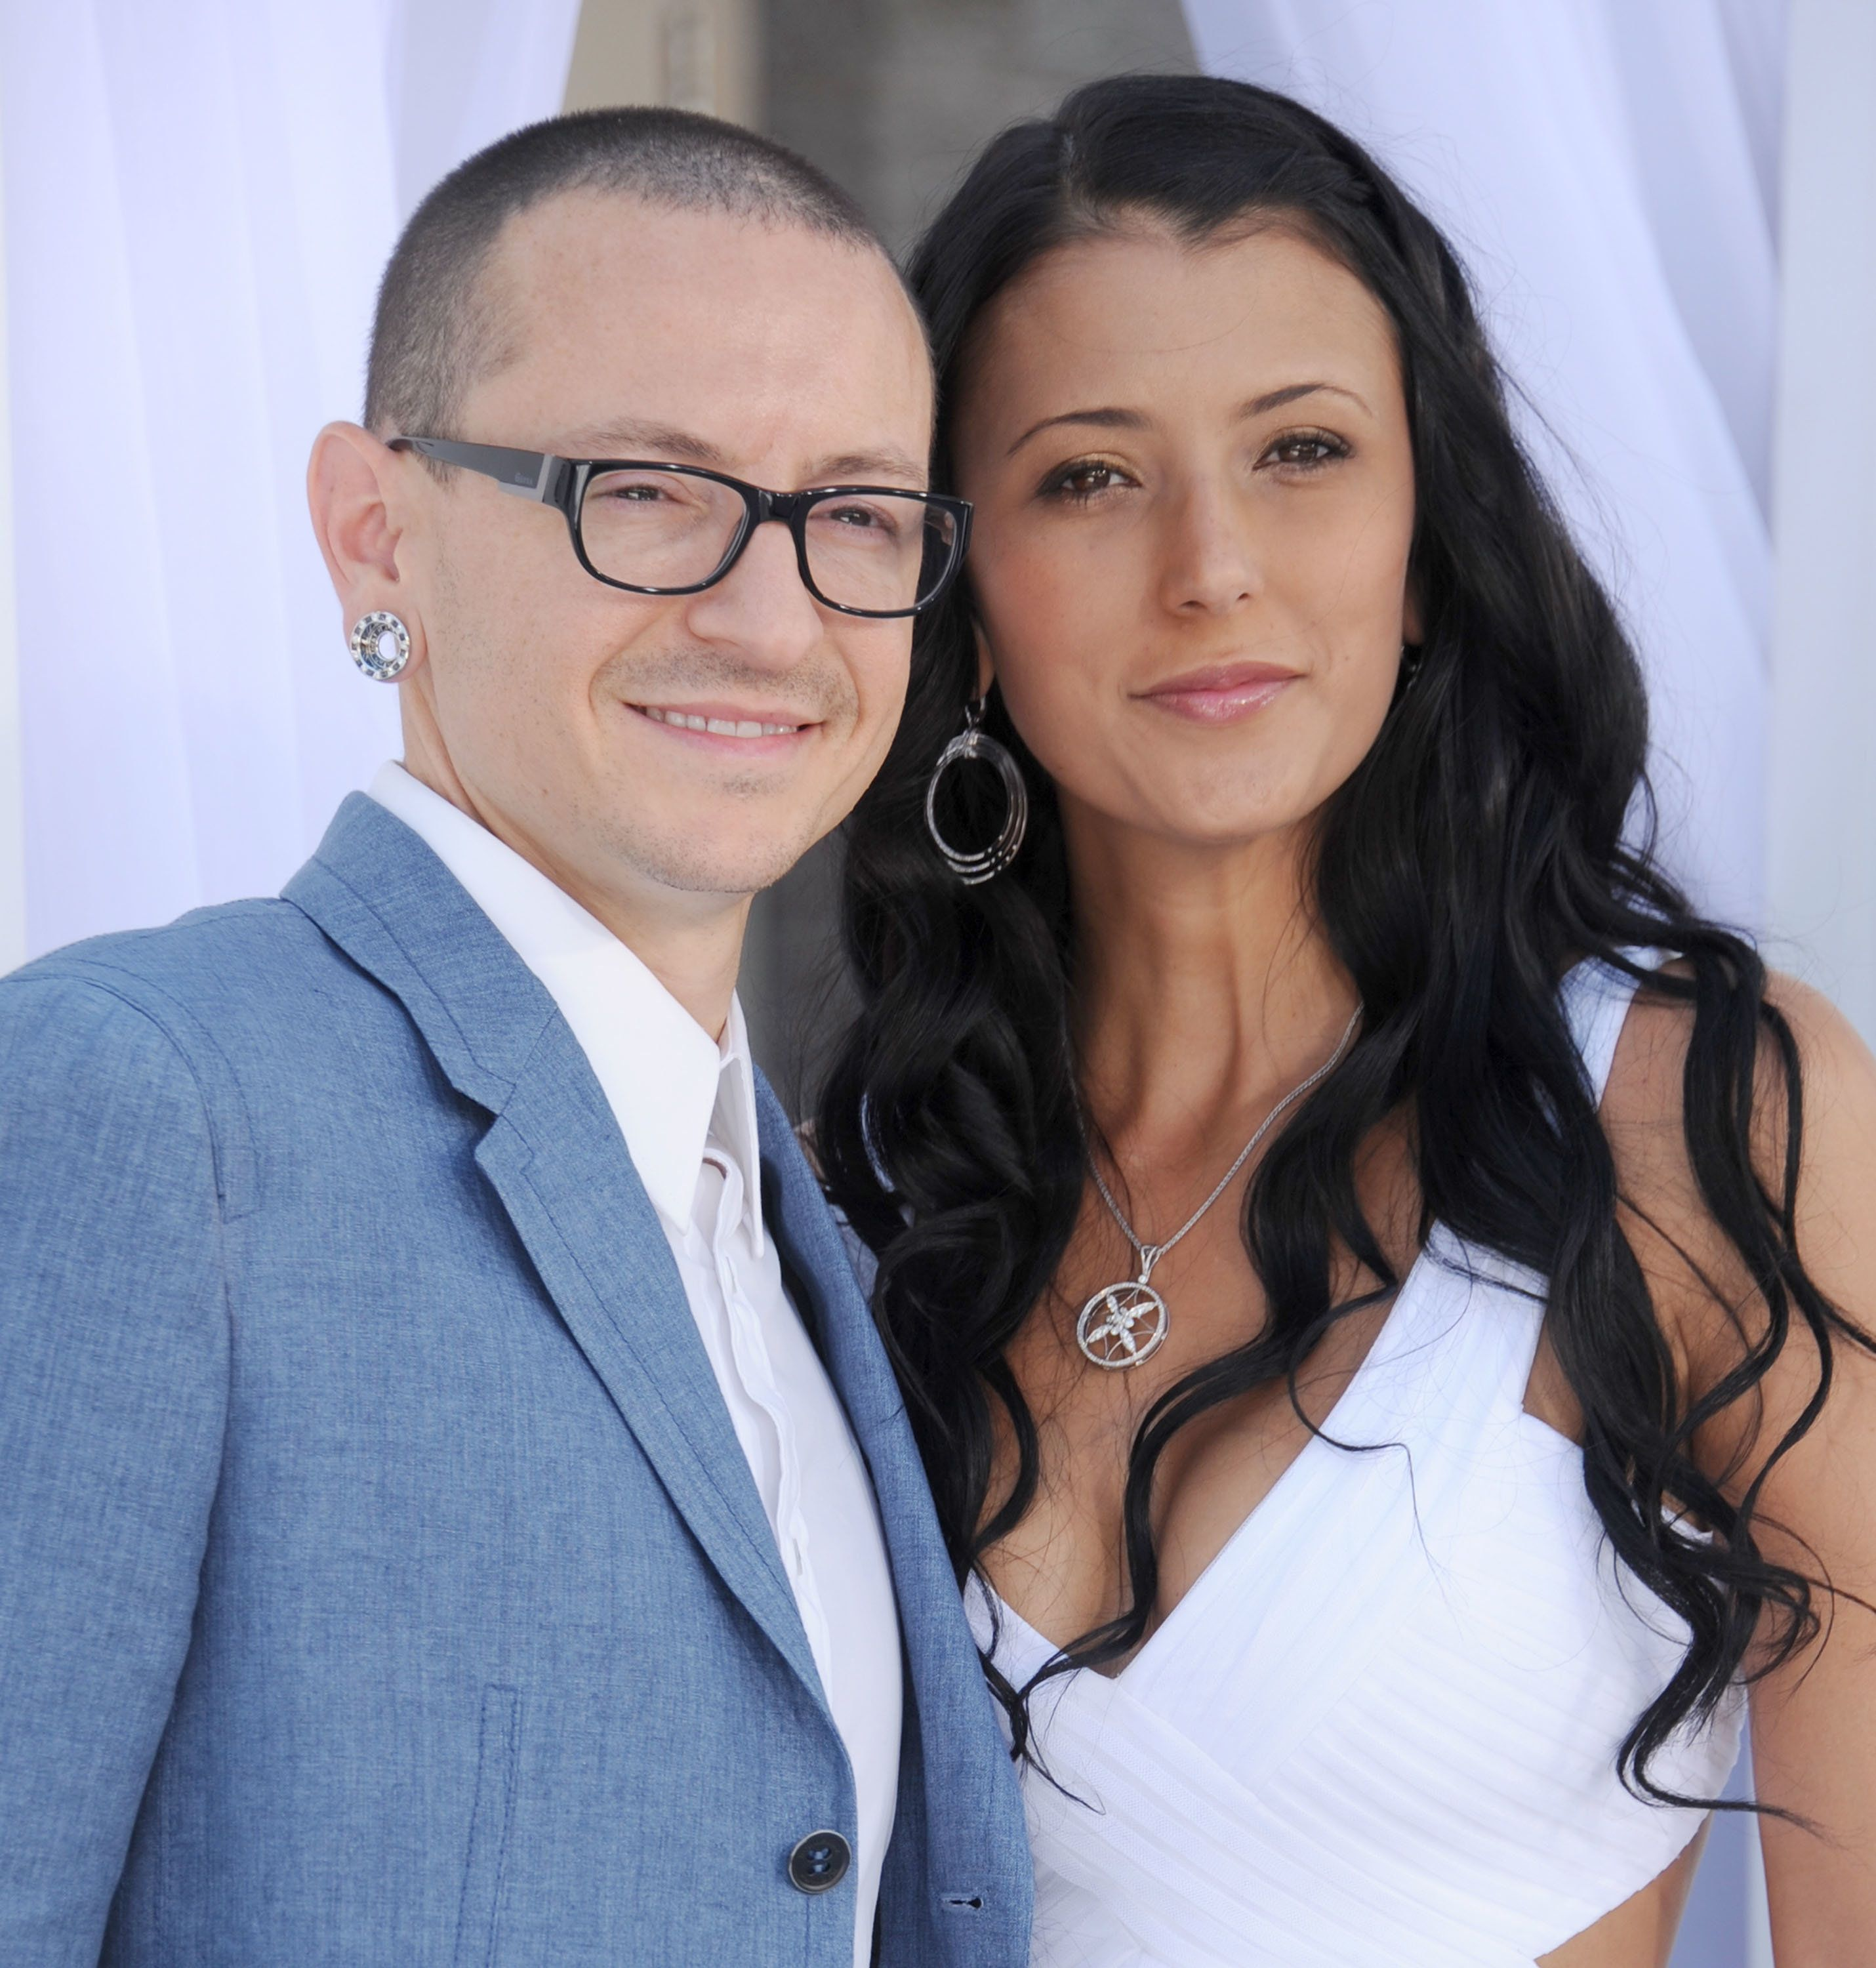 LAS VEGAS, NV - MAY 20:  Musician Chester Bennington of Linkin Park and wife Talinda Ann Bentley arrive at the 2012 Billboard Music Awards at MGM Grand on May 20, 2012 in Las Vegas, Nevada.  (Photo by Gregg DeGuire/WireImage)